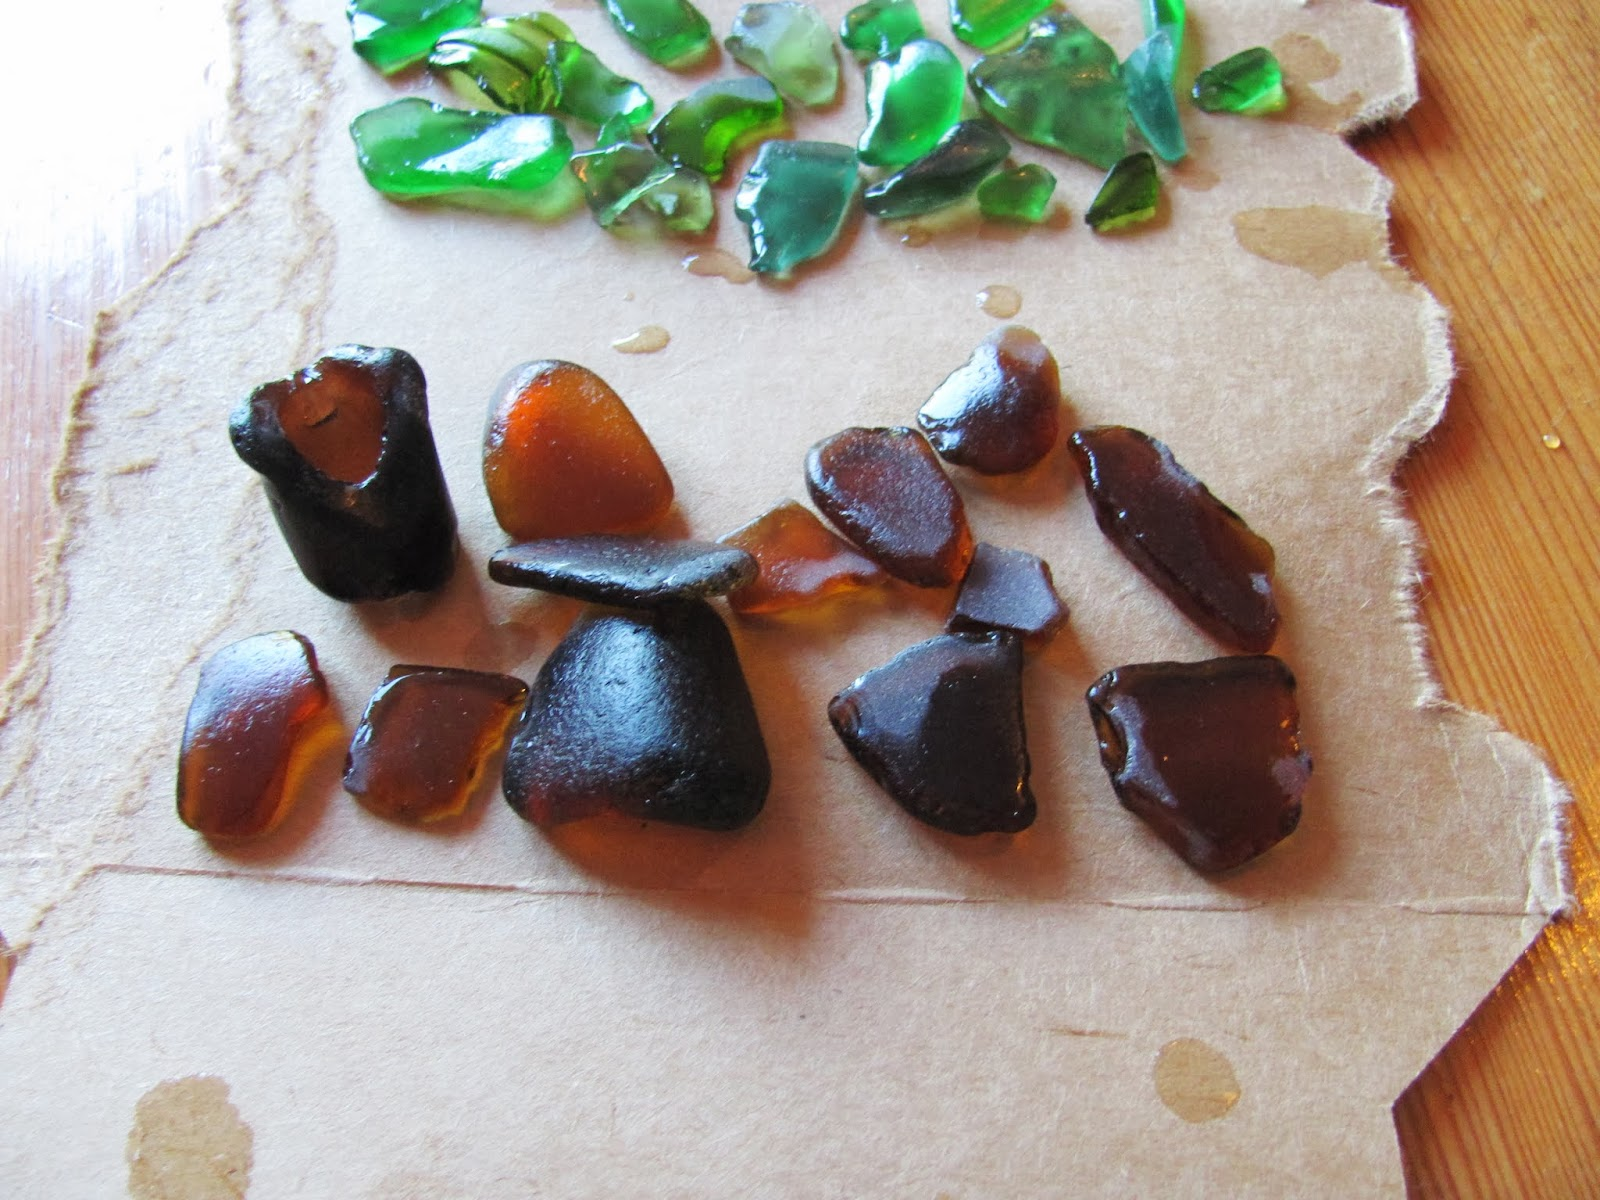 Brown sea glass is on display on a cardboard box in Dublin, Ireland